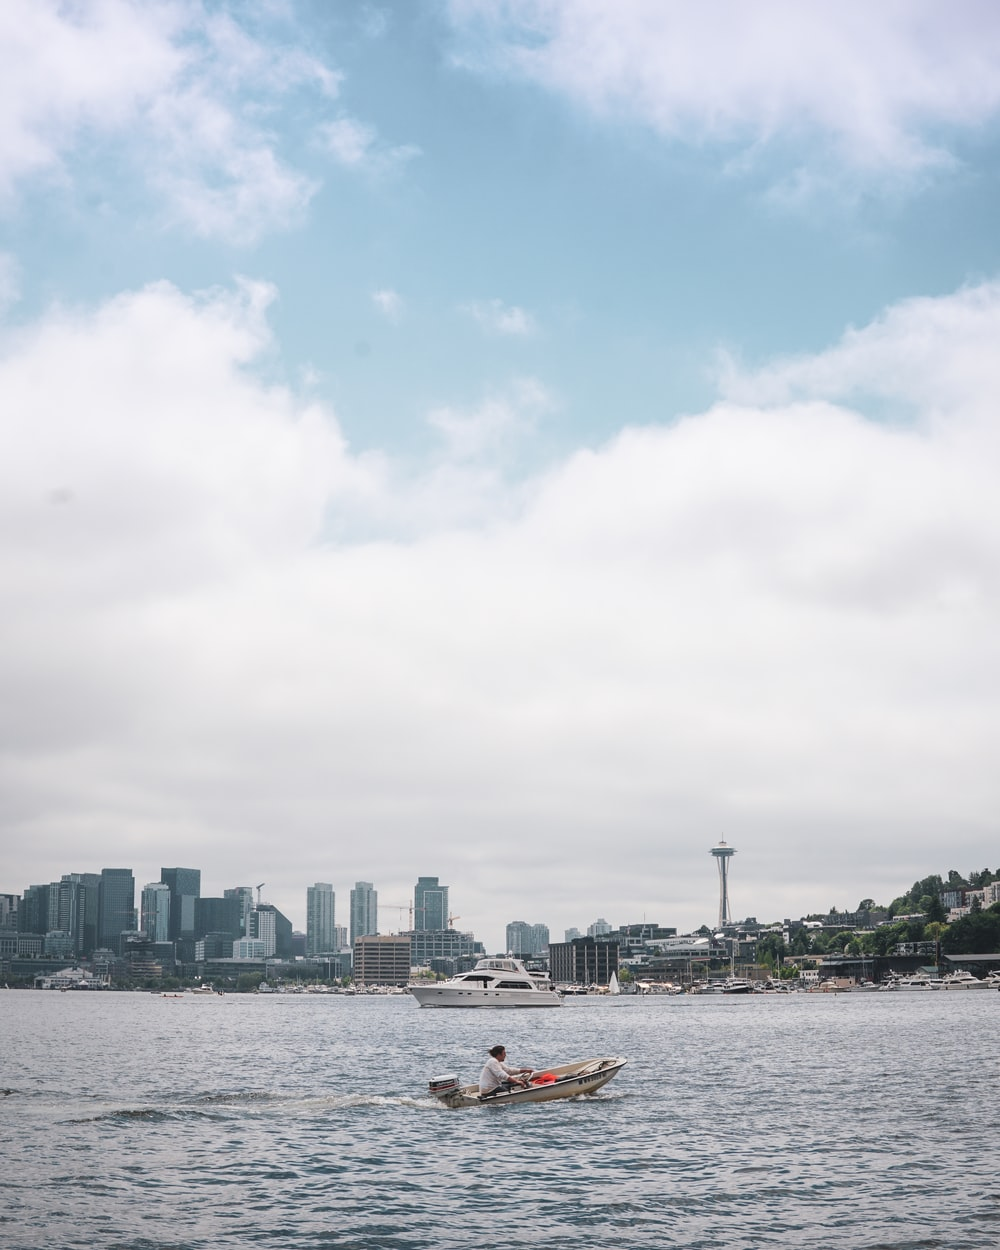 people riding on boat on sea near city buildings during daytime